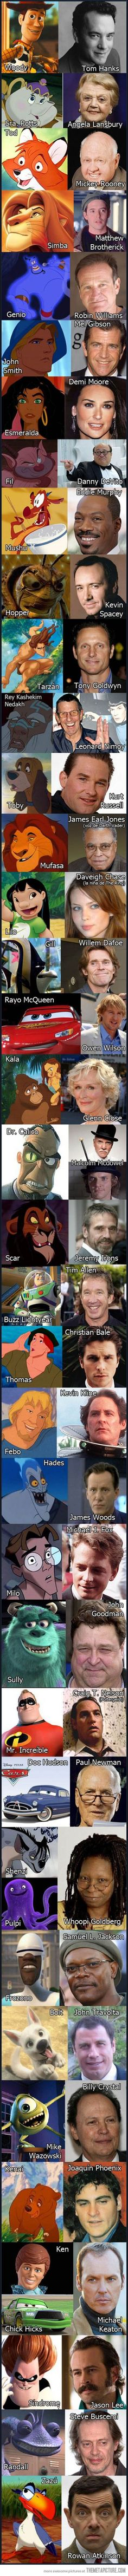 Disney characters and their real faces